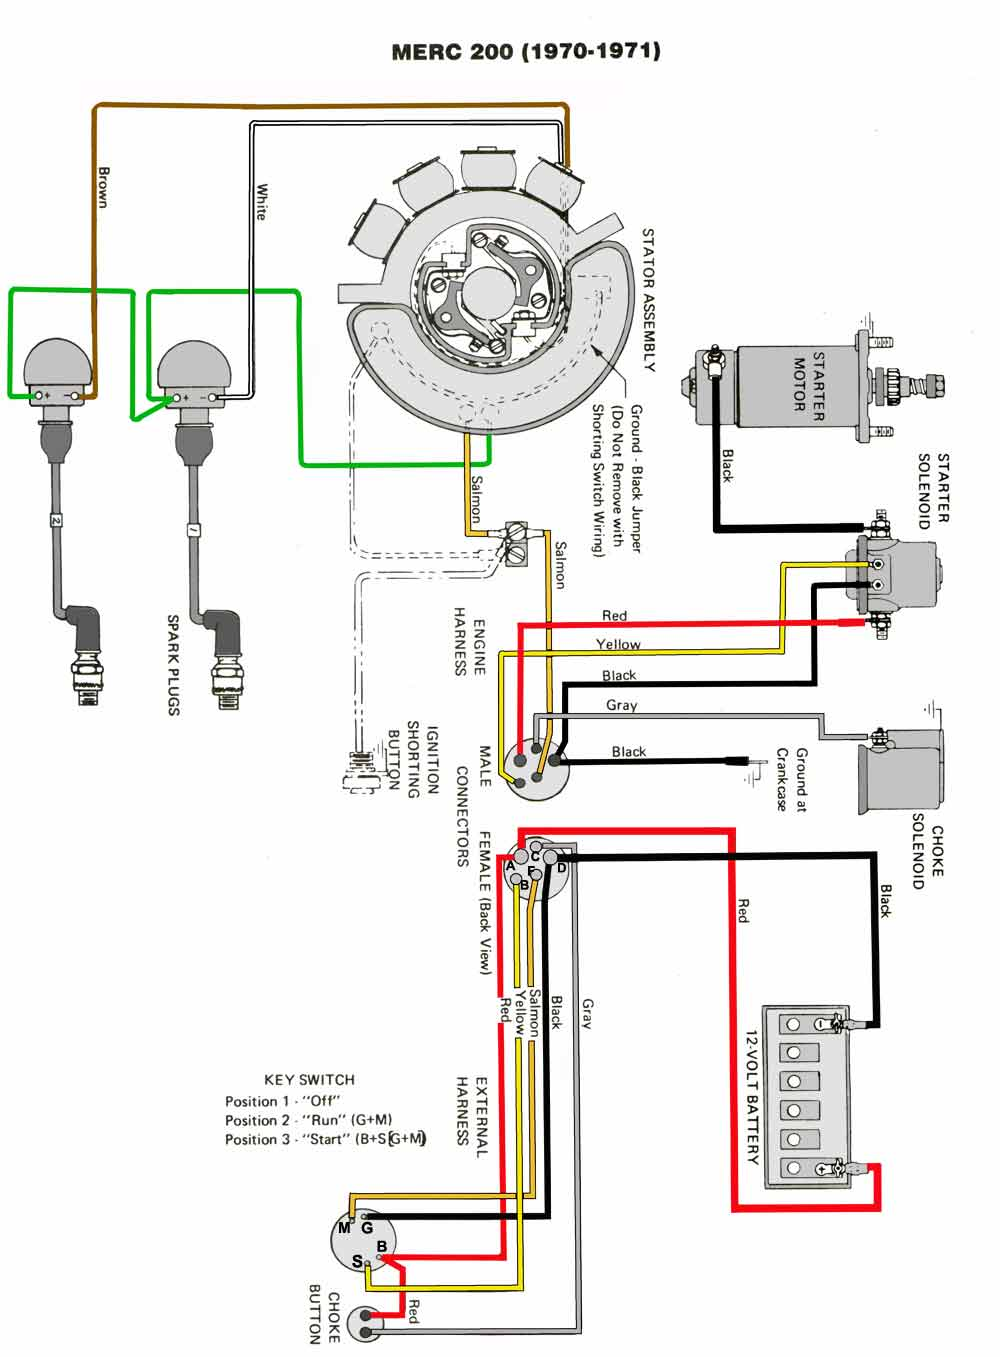 Honda Outboard Tachometer Wiring Diagram on honda outboard parts lookup, suzuki outboard tachometer wiring diagram, 1974 mercury outboard ignition switch wiring diagram, outboard motor wiring diagram, honda outboards brand, honda outboard motor diagrams, 1986 mercury outboard throttle diagram, honda outboard wiring color code, mercury key switch wiring diagram,